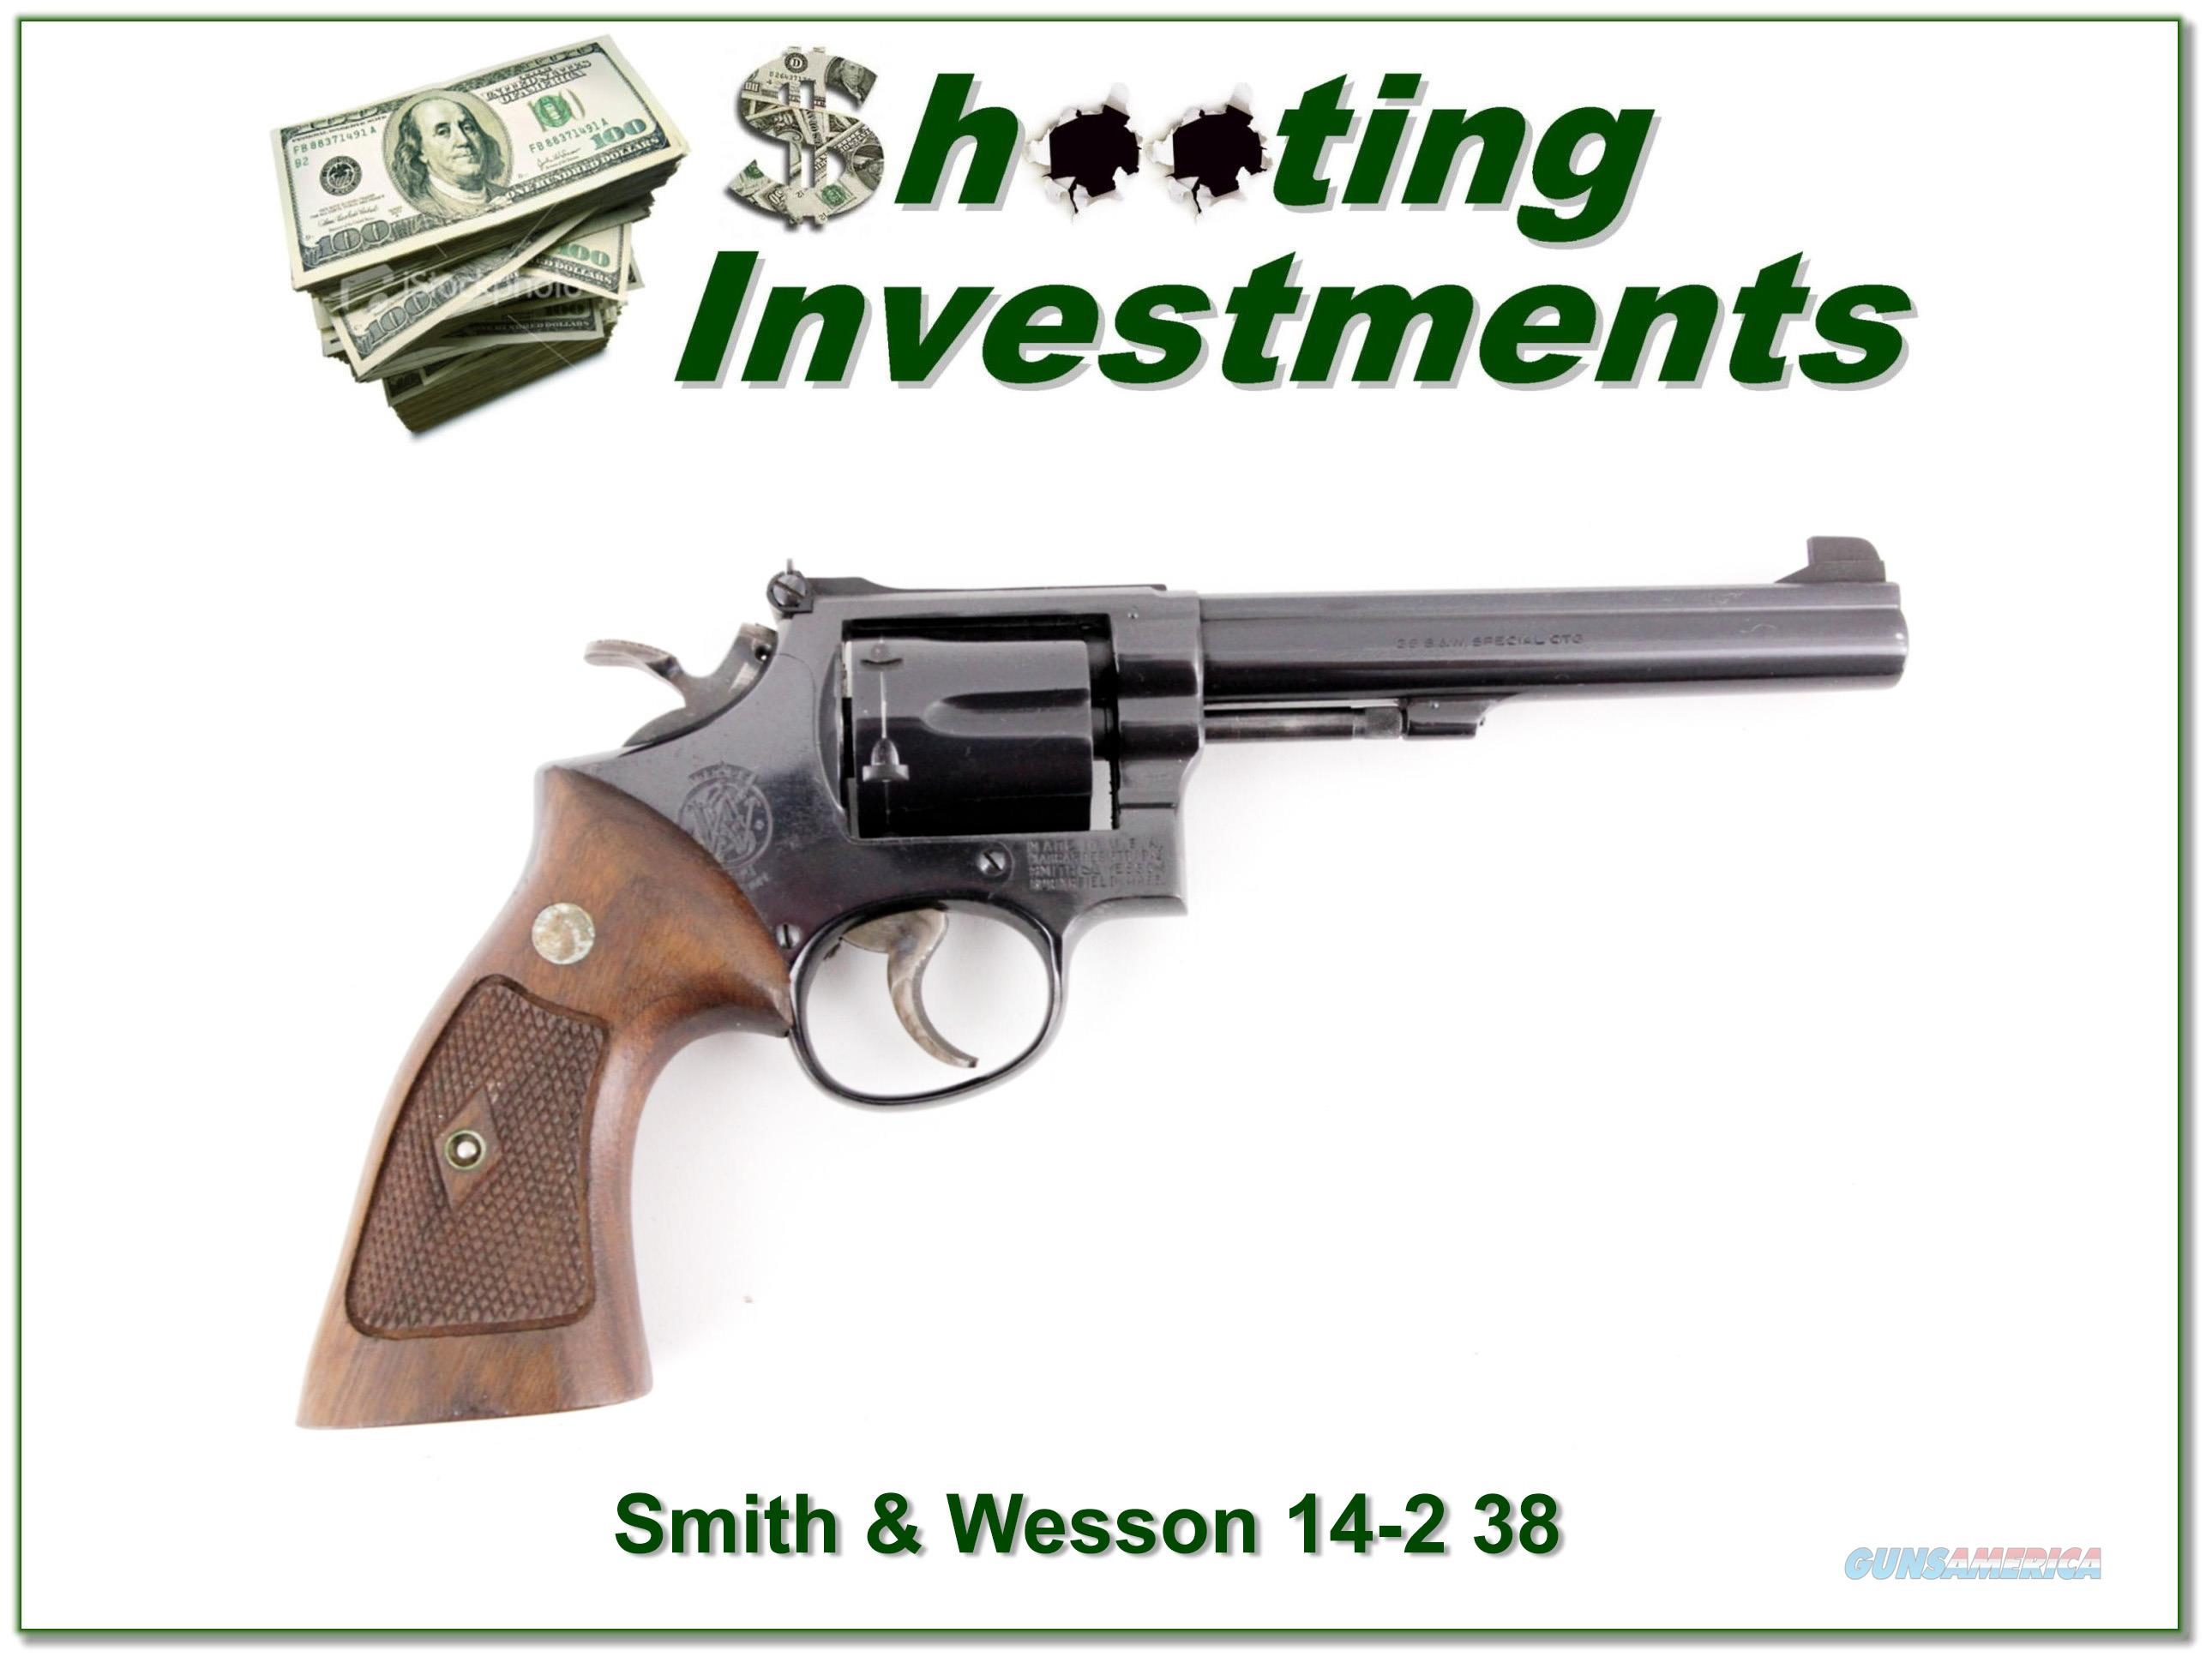 Smith & Wesson 14-2 38 Special 6in blued Exc Cond  Guns > Pistols > Smith & Wesson Revolvers > Full Frame Revolver